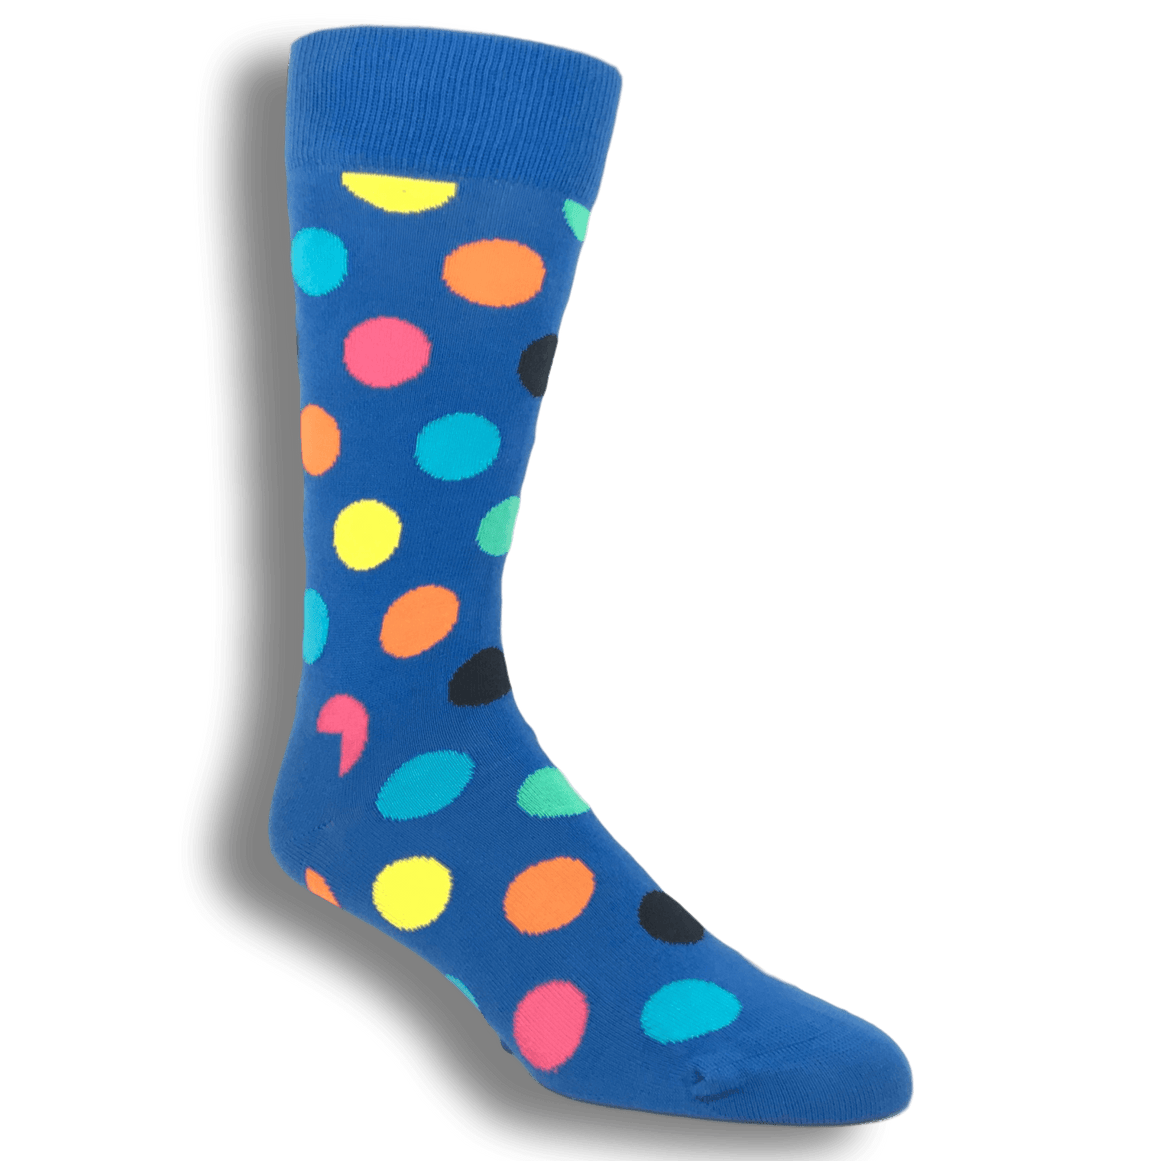 Socks - Light Blue With Multi Colored Big Dots Socks By Happy Socks